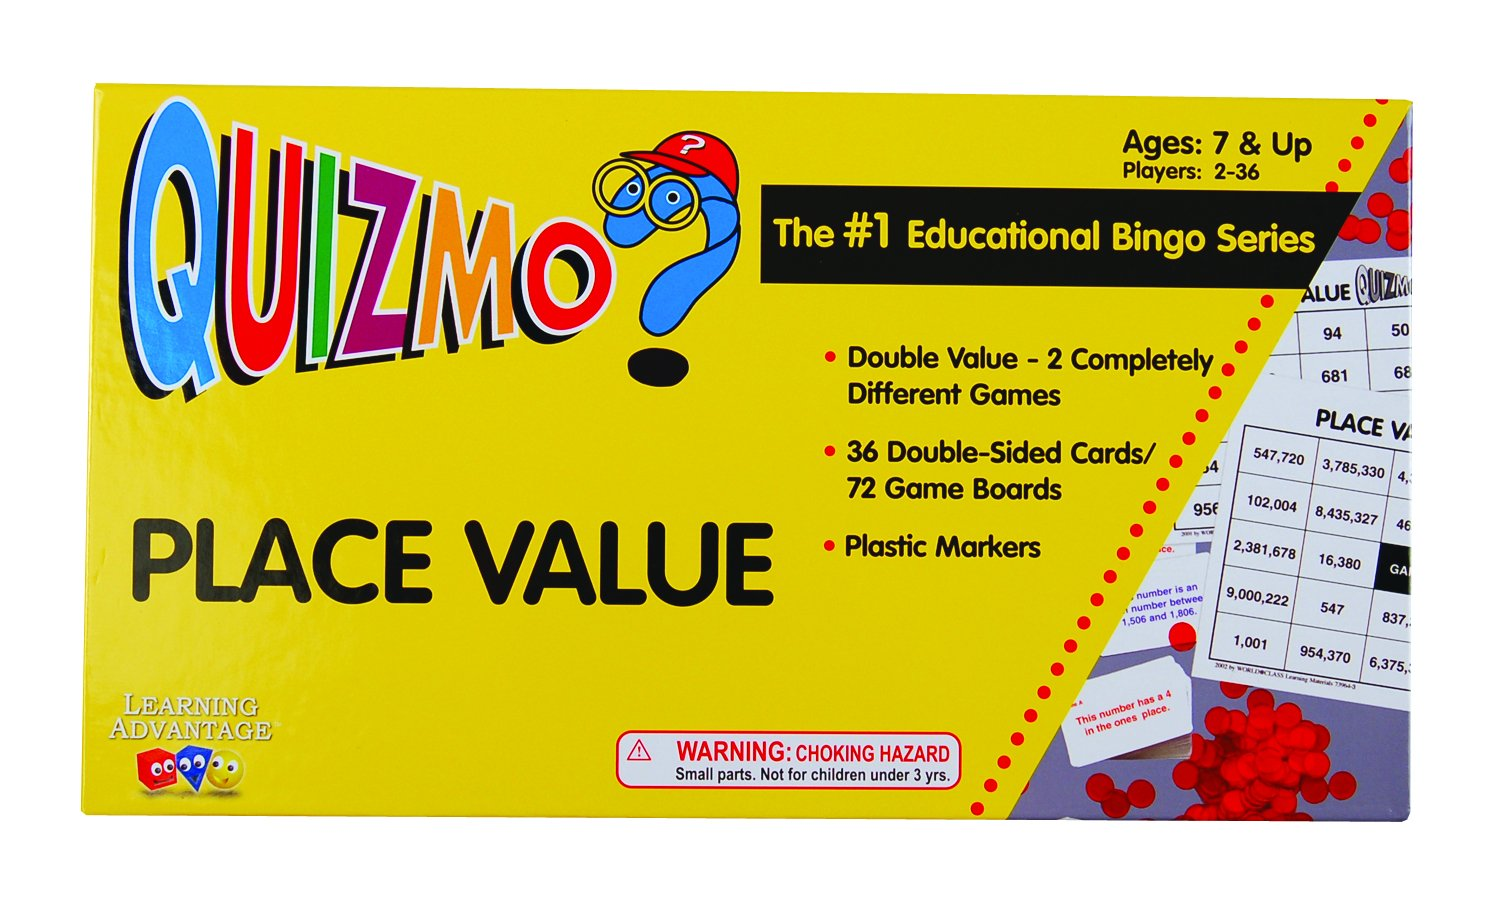 place value quizmo BINGO games